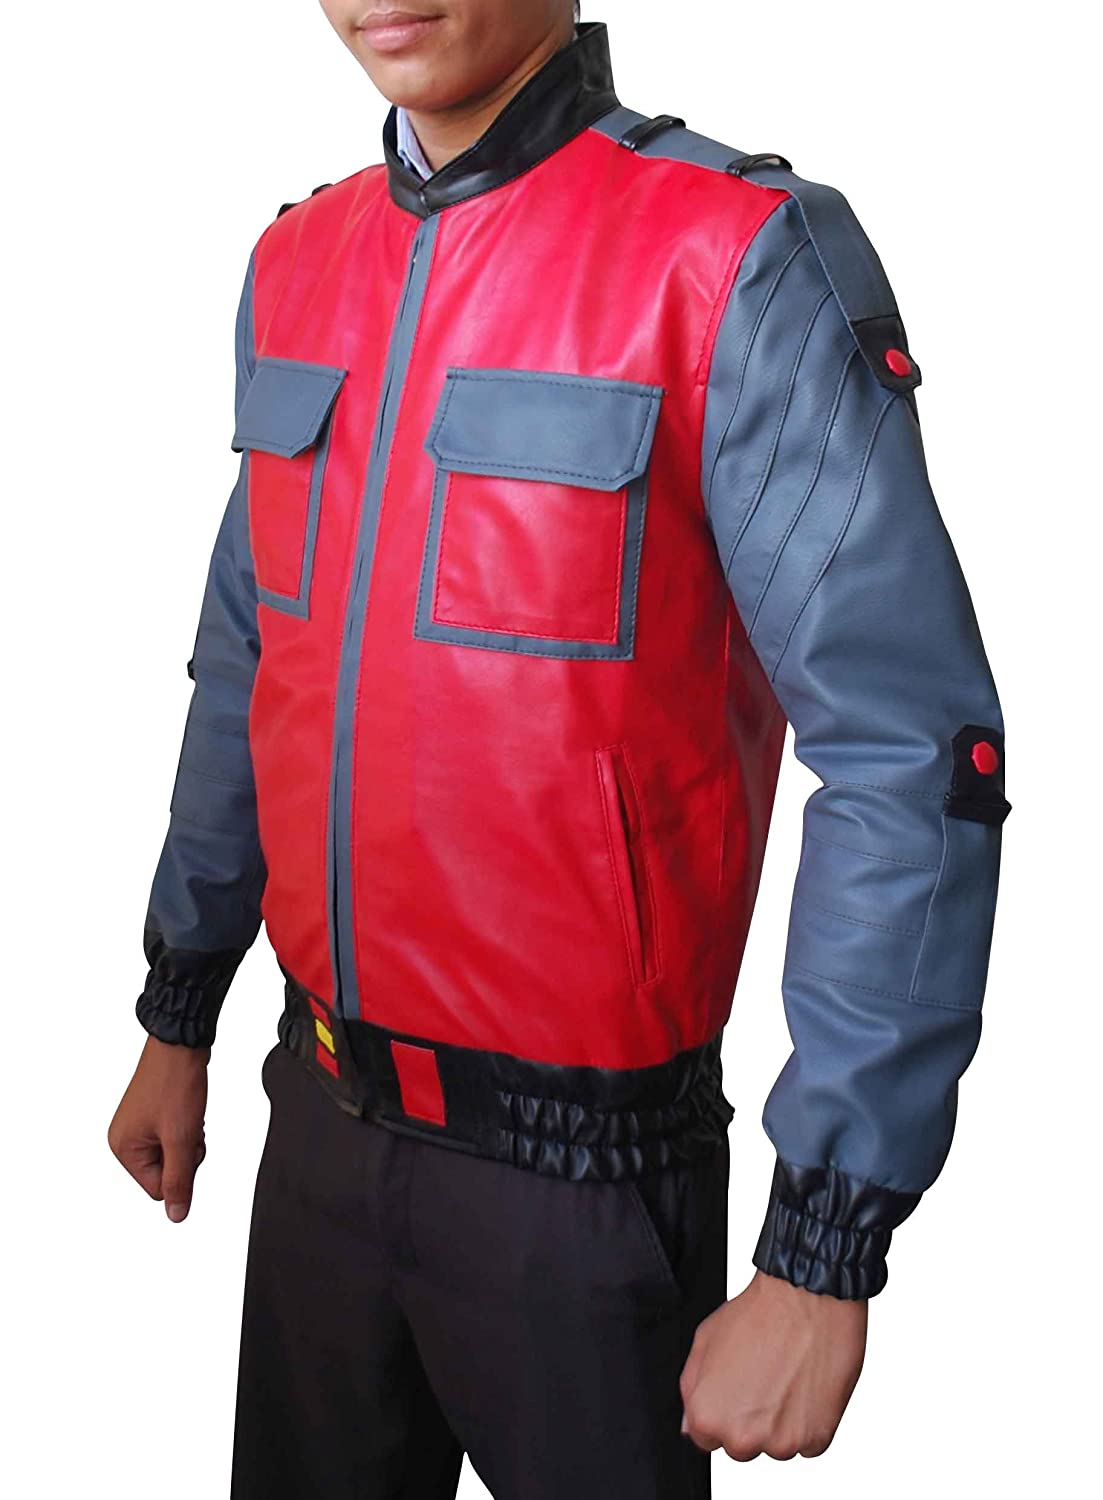 BTTF Back To The Future II Marty Mcfly 2015 Jacket